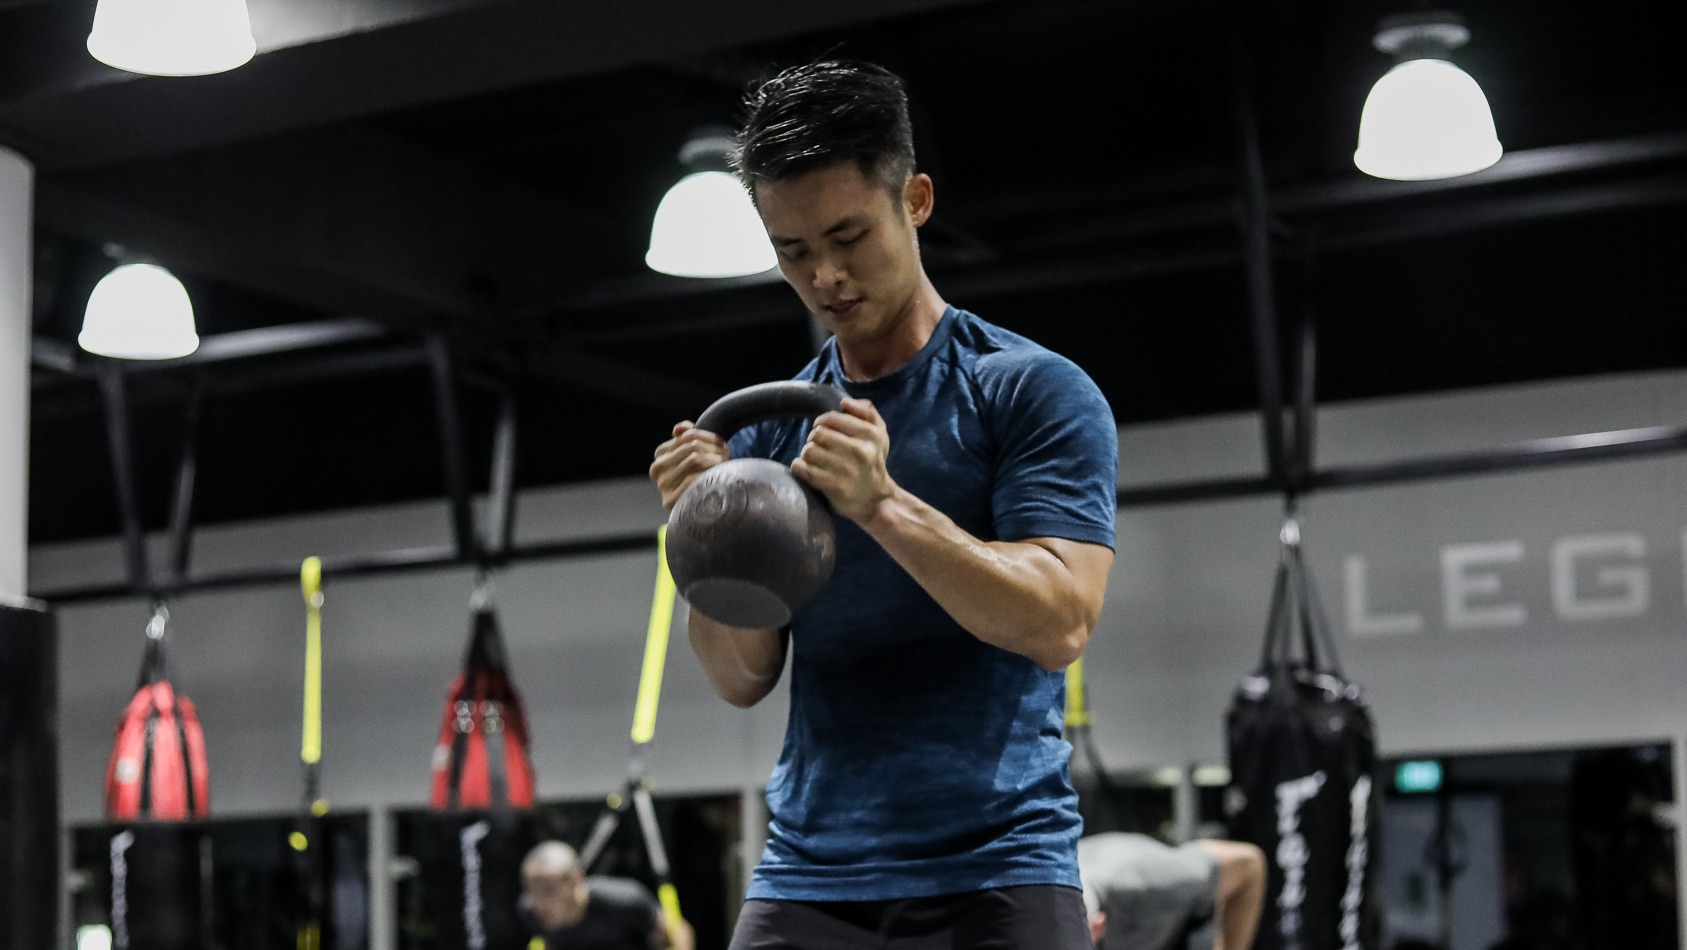 a person carrying a kettlebell